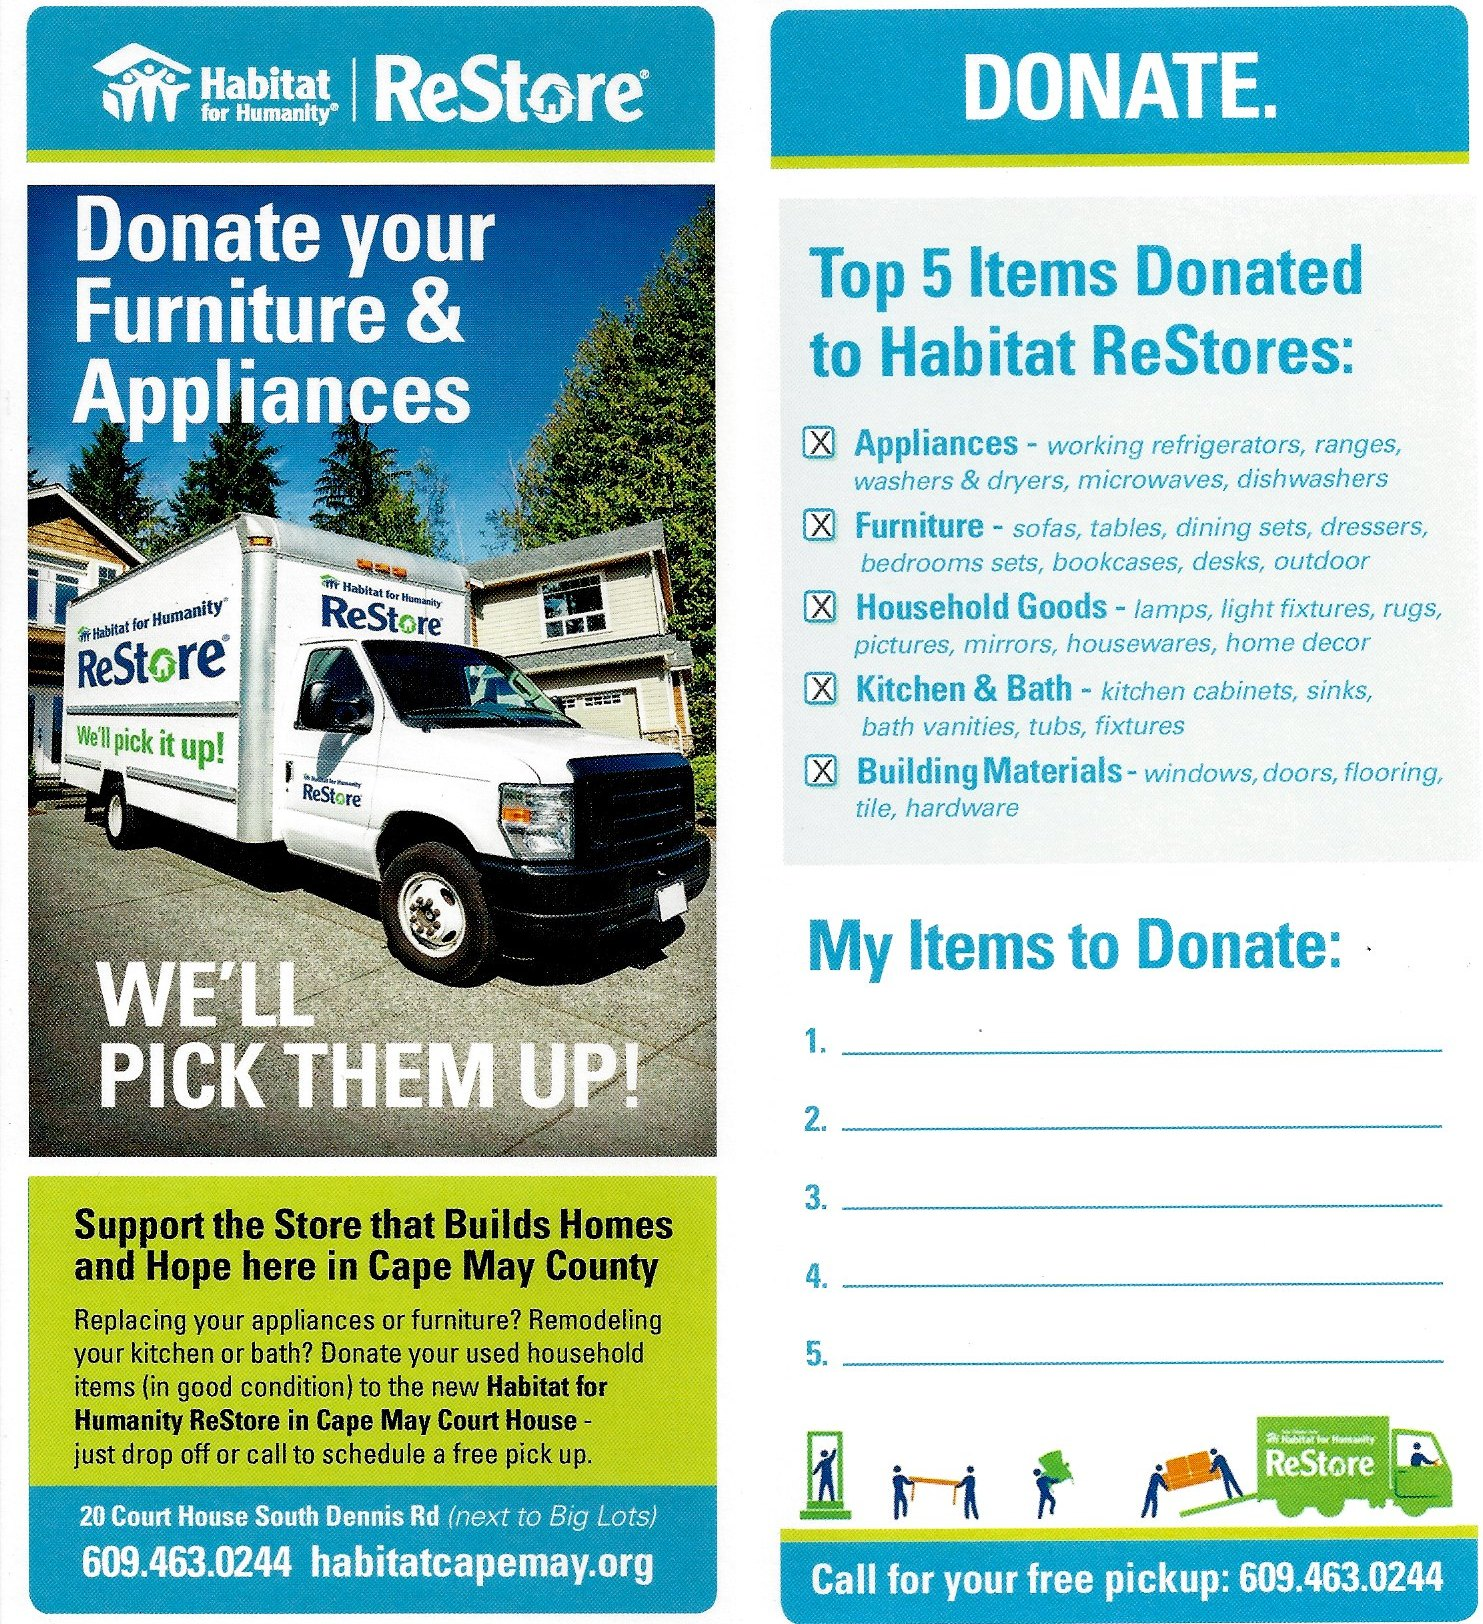 Habitat For Humanity Restore Donate Furniture Appliances